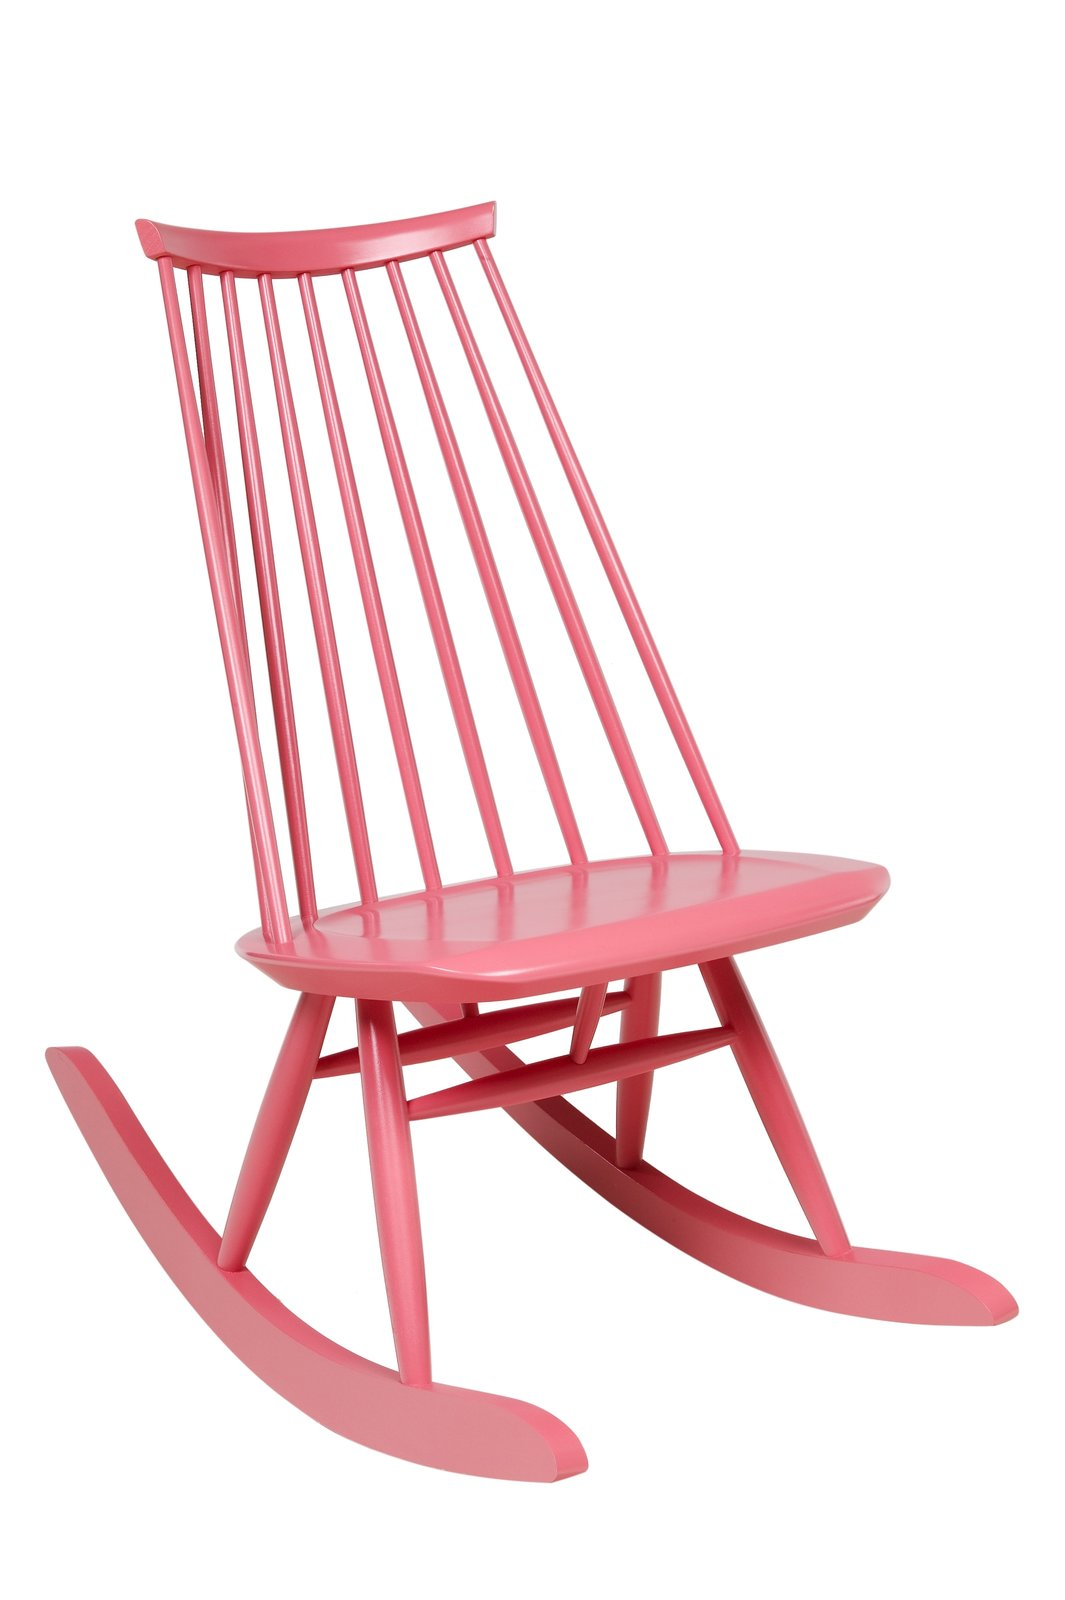 The Mademoiselle rocking chair in solid birch sports a high backrest with a low profile, not terribly dissimilar from the Windsor chair silhouette. It's also available Artek in a non-rocking version, most commonly seen in painted black.  100+ Best Modern Seating Designs from Aalto Isn't the Only Finnish Modernist: Meet Ilmari Tapiovaara